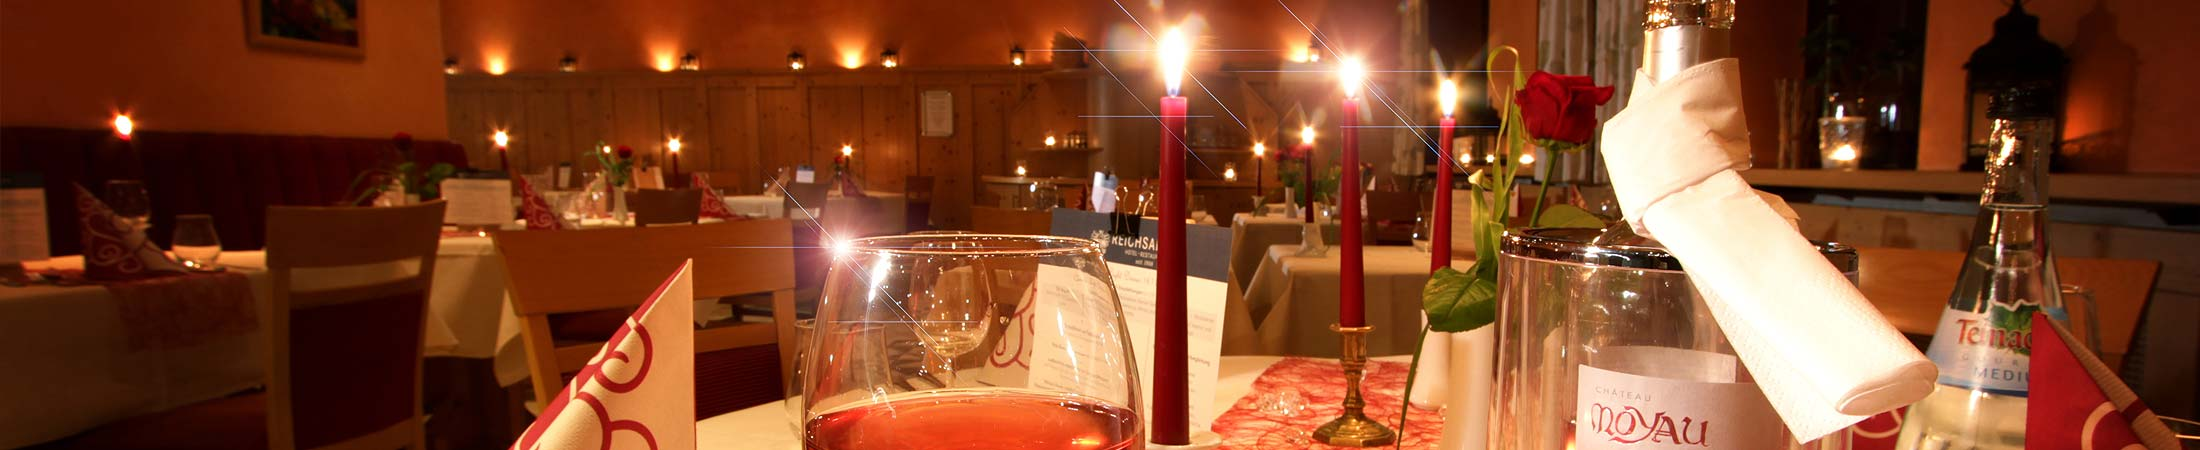 Hotel & Restaurant Reichsadler in Buchen - Candle Light Dinner